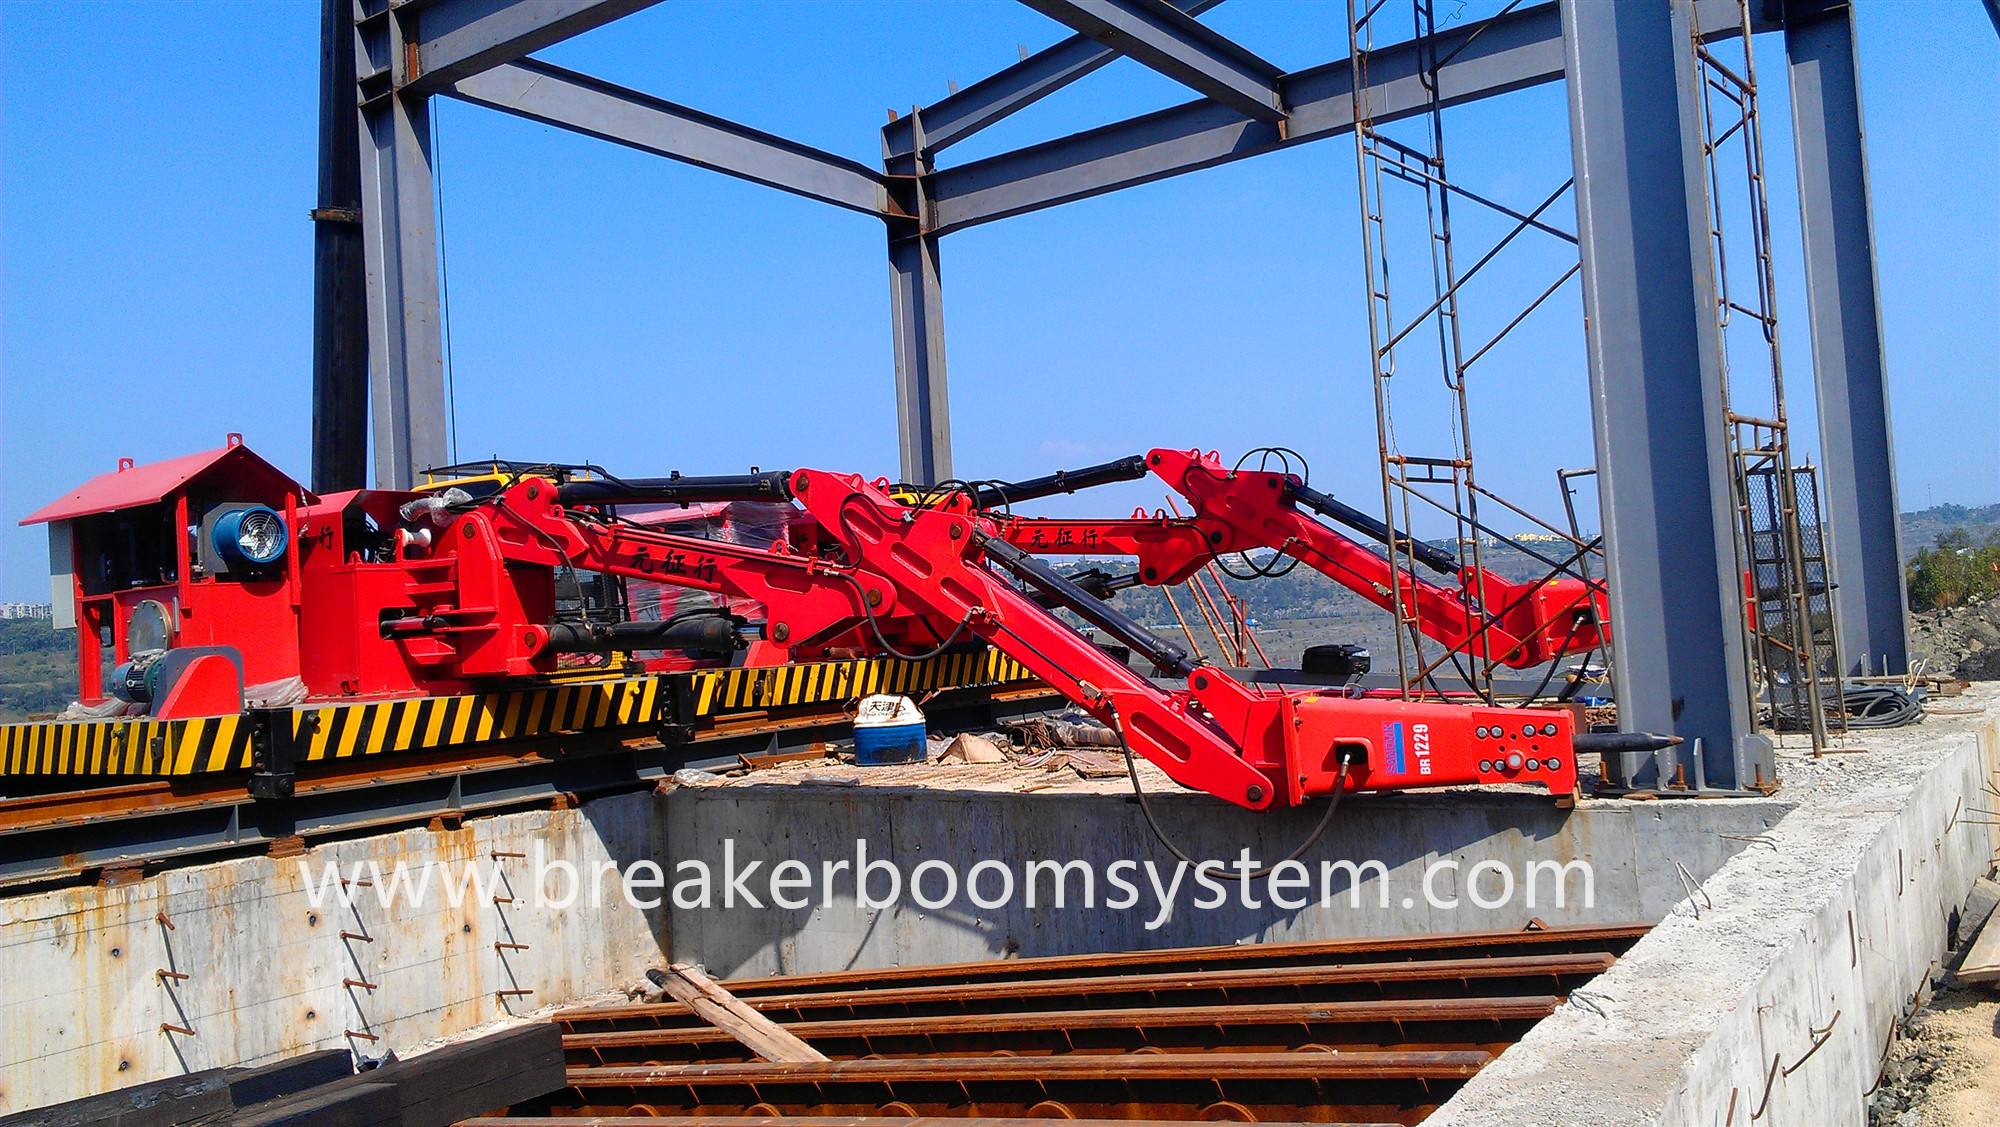 Stationary Pedestal Booms System